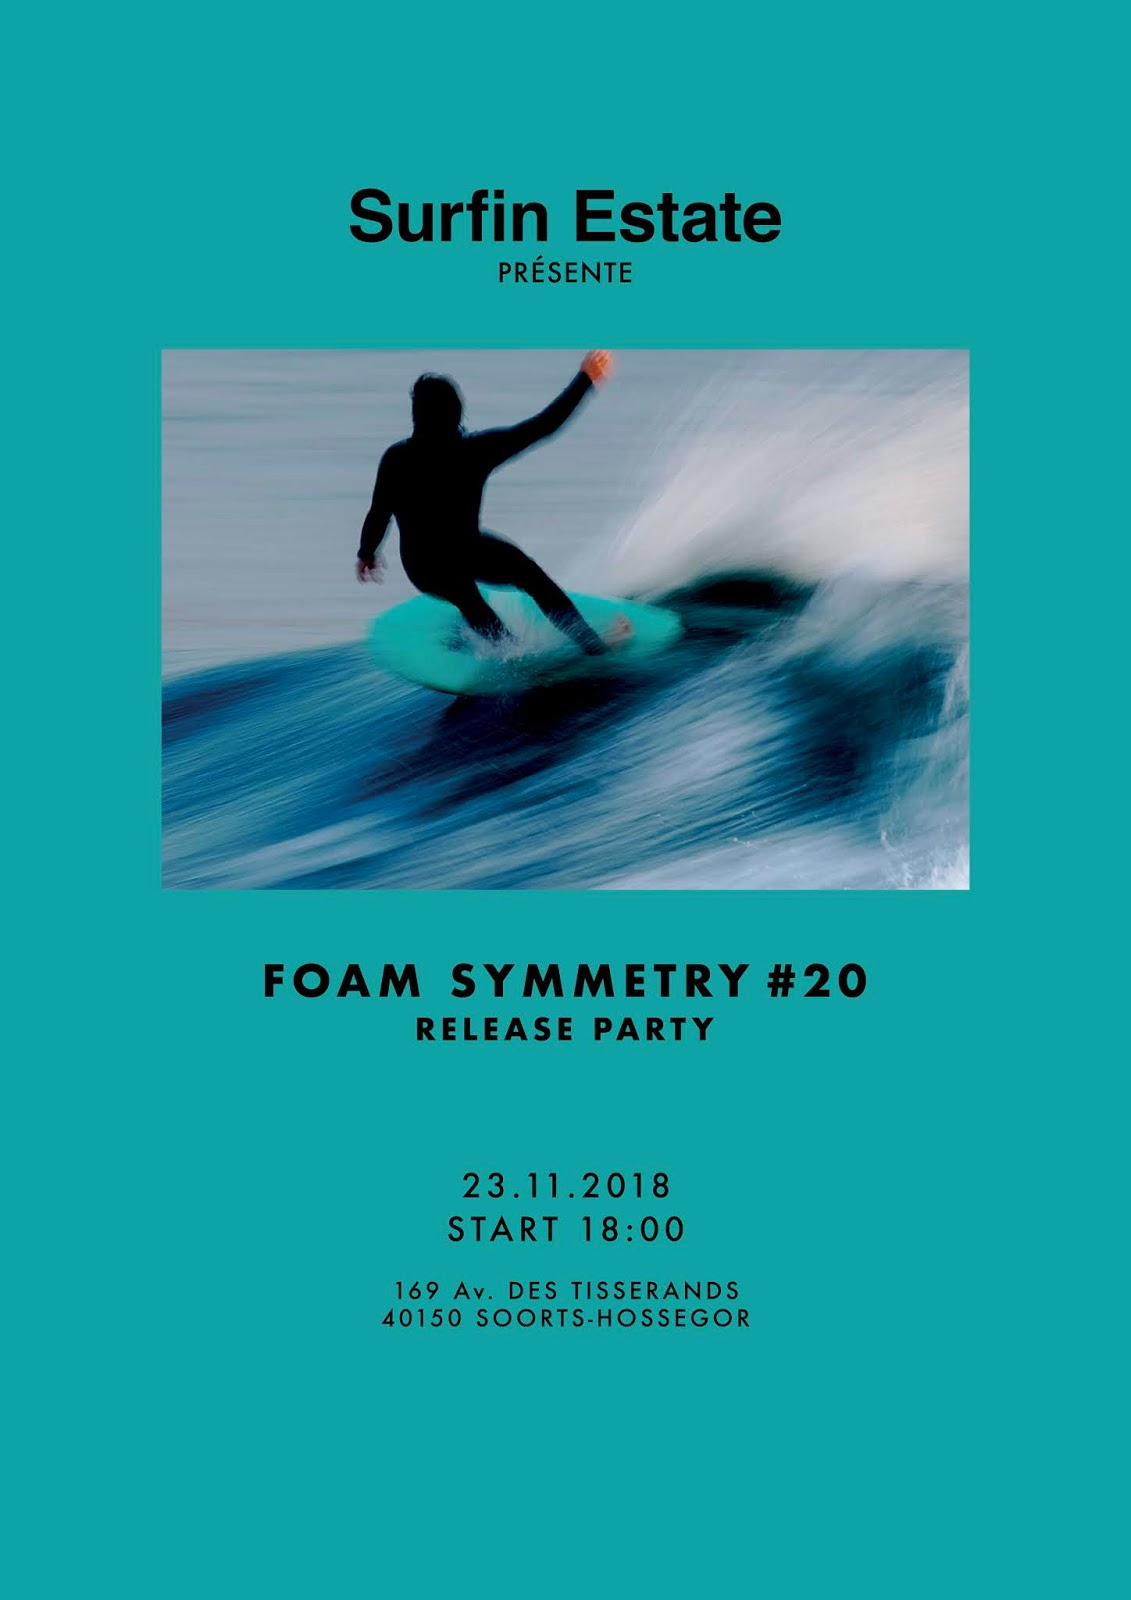 Foam symmetry release party at Surfin Estate